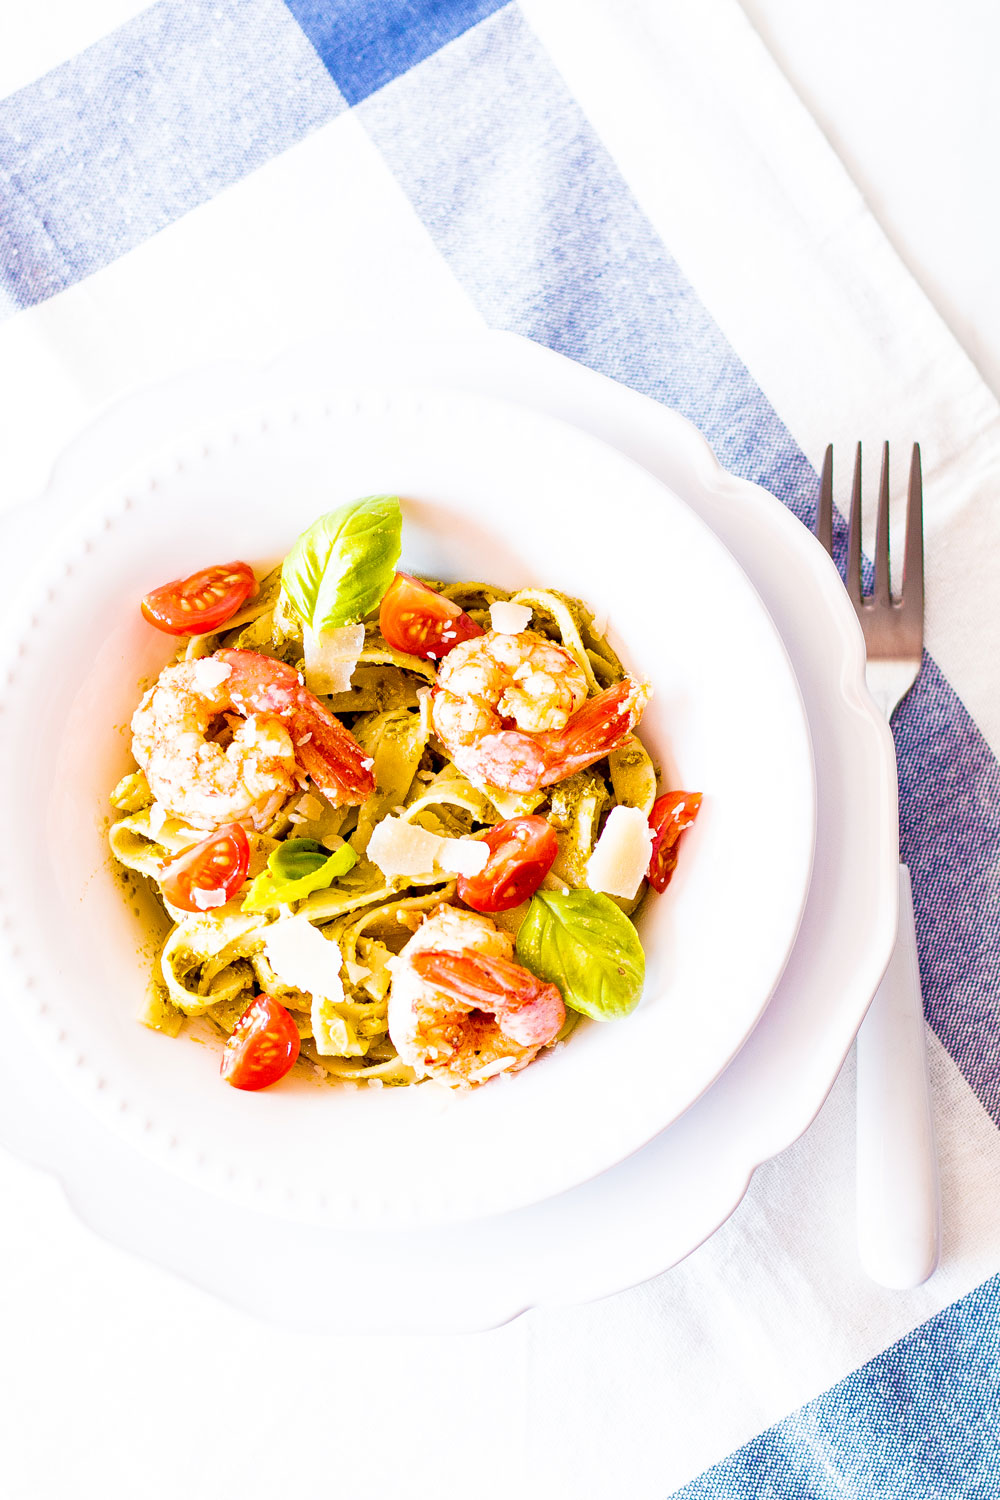 After your workout, make this 20-Minute Pesto Shrimp Pasta and keep the recovery process moving! Dense carb meals, that are also rich in protein and healthy fats, are best consumed after exercise. https://www.spotebi.com/recipes/20-minute-pesto-shrimp-pasta/